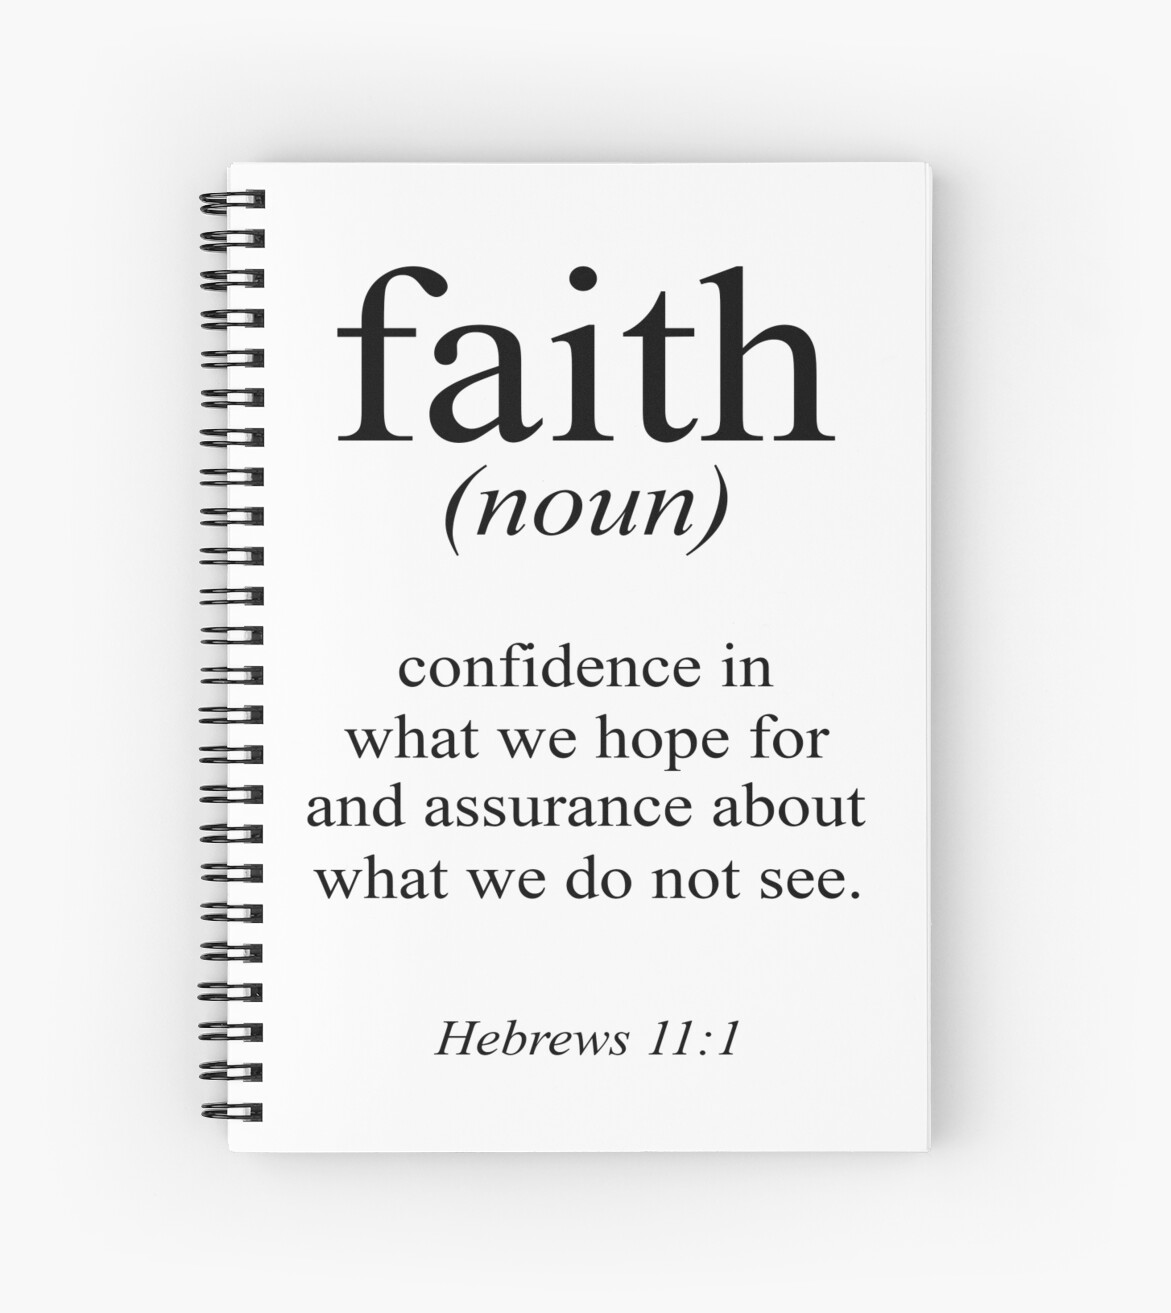 "hebrews 11:1 faith definition black & white bible verse"" spiral"